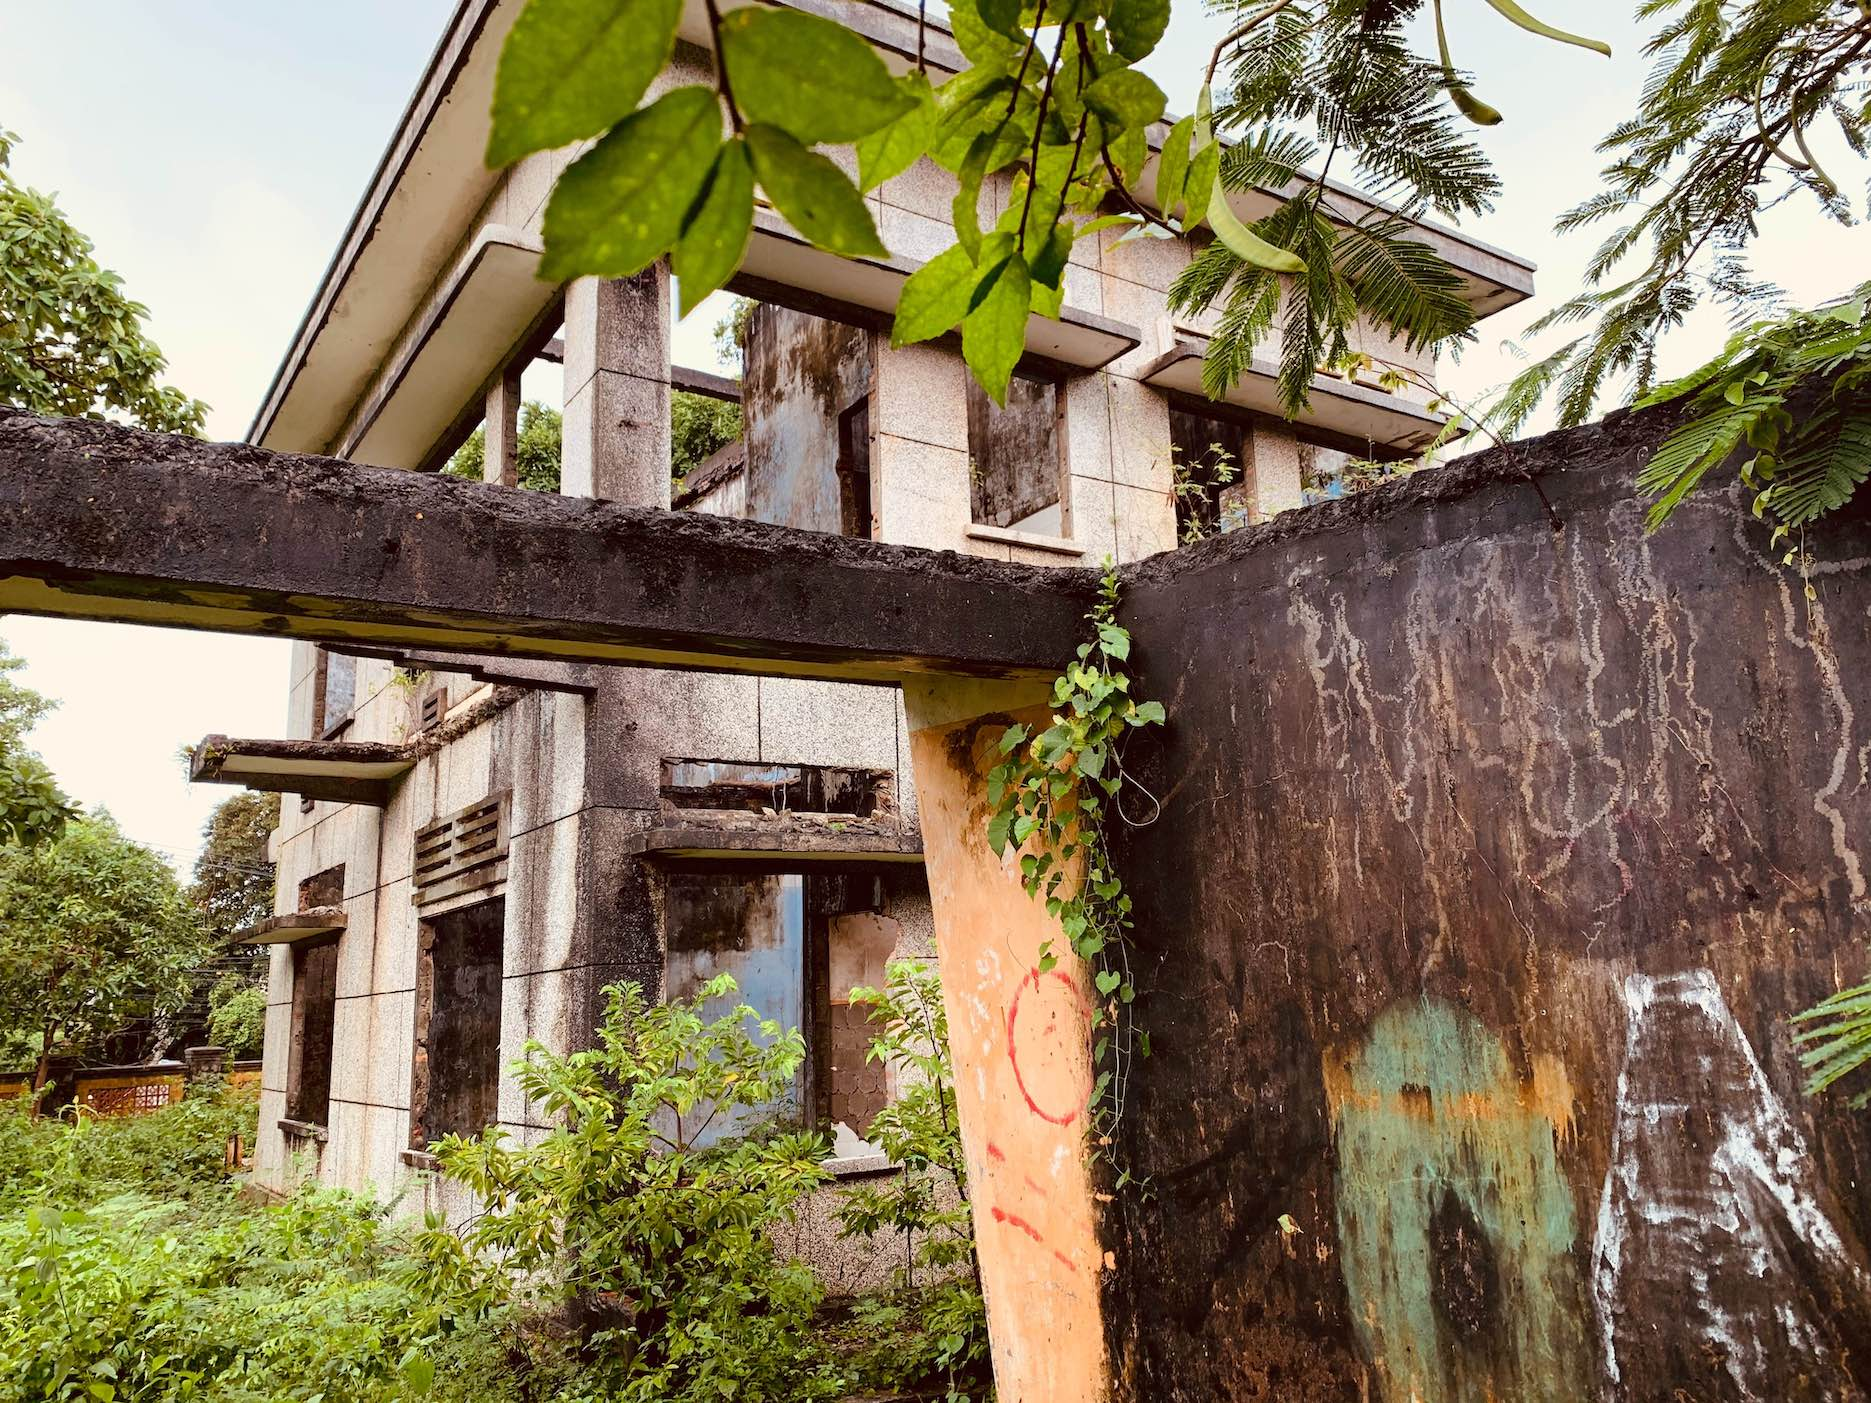 The abandoned villas of Kep.